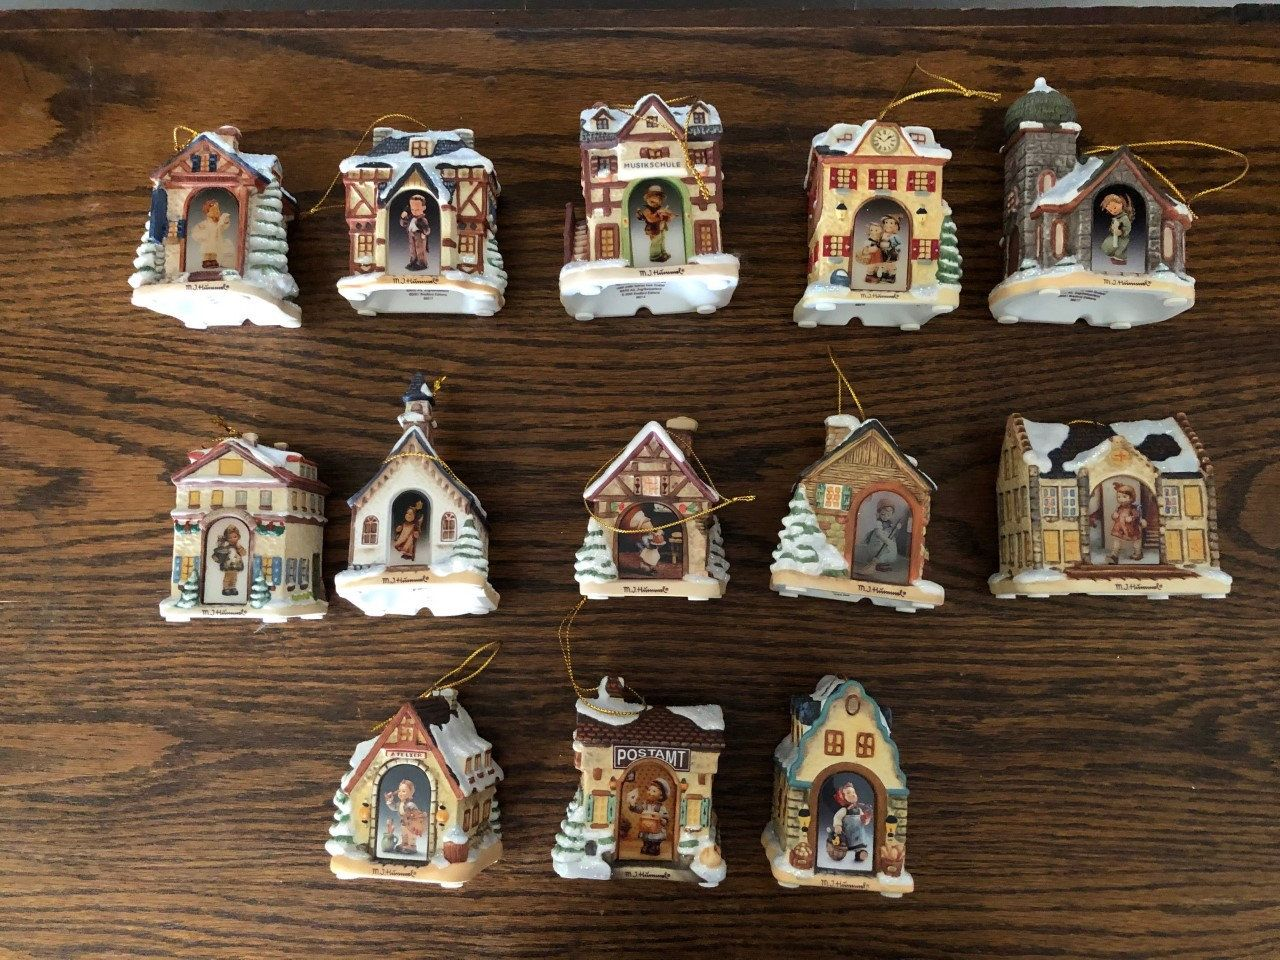 Mi Hummel Christmas Ornaments 2020 Hummel Ornaments Christmas Bavarian Village Ornaments 1999 | Etsy